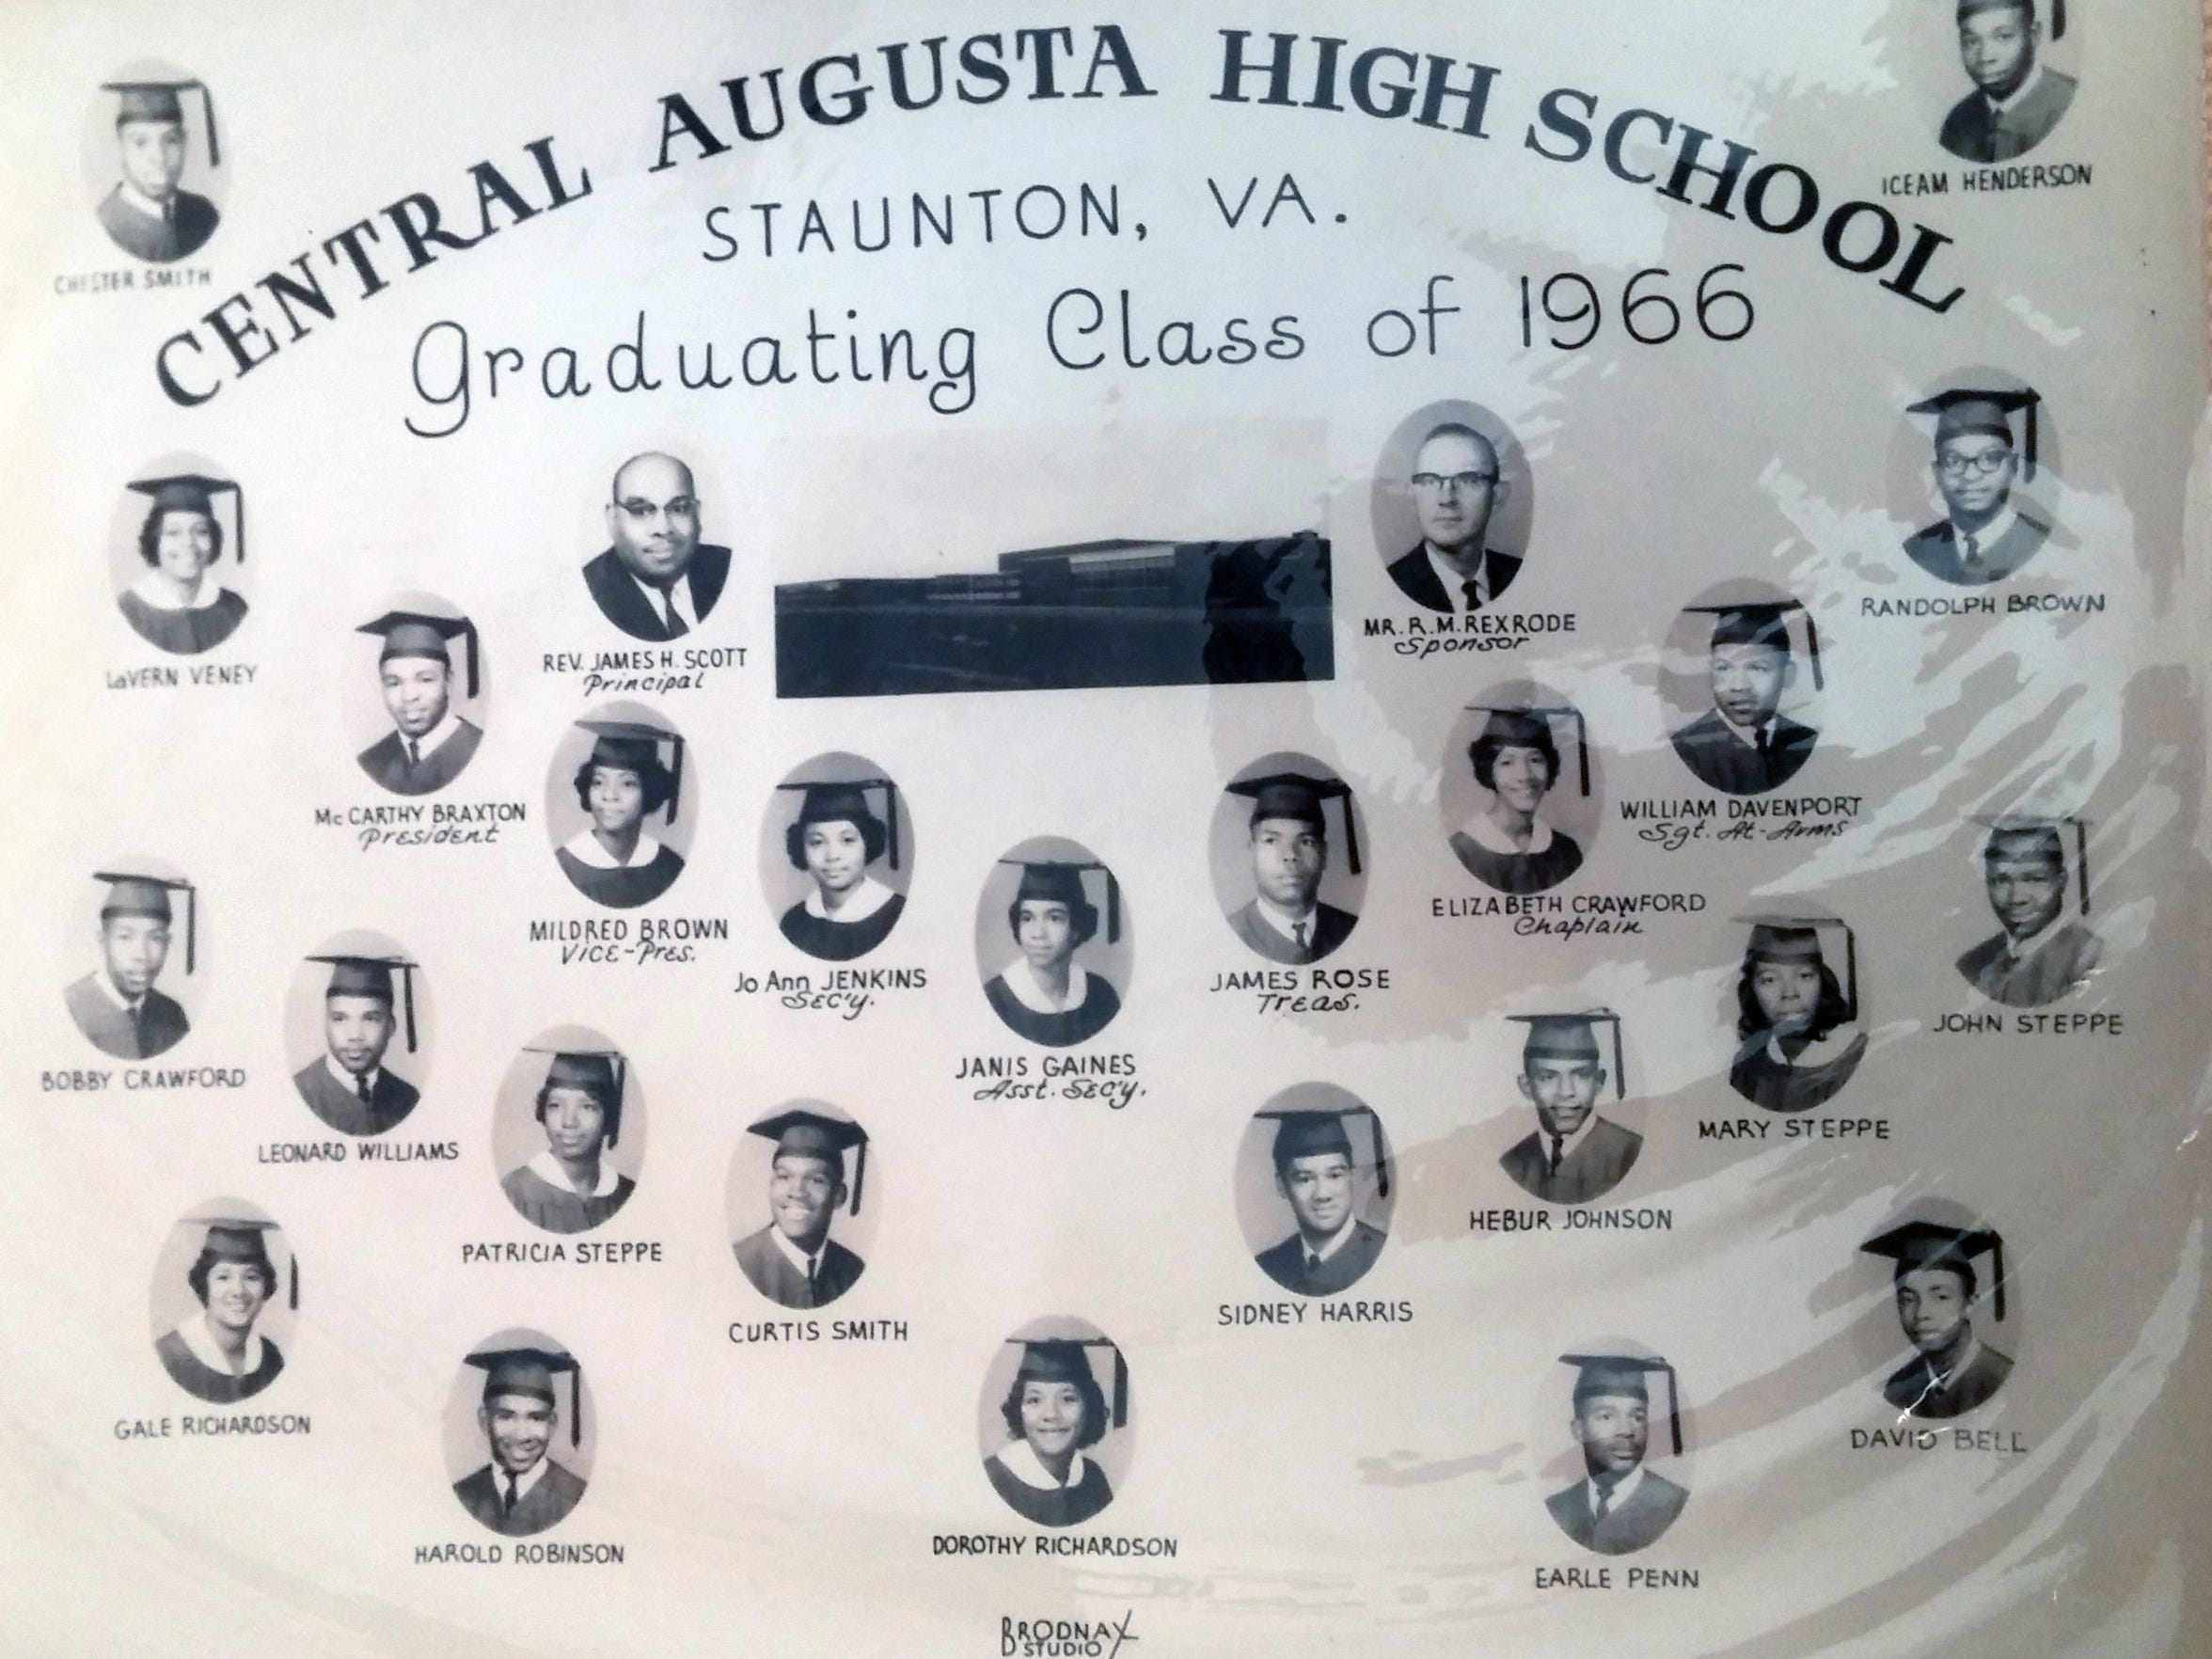 Among those graduating from Central Augusta High School in 1966 was Leonard Williams.